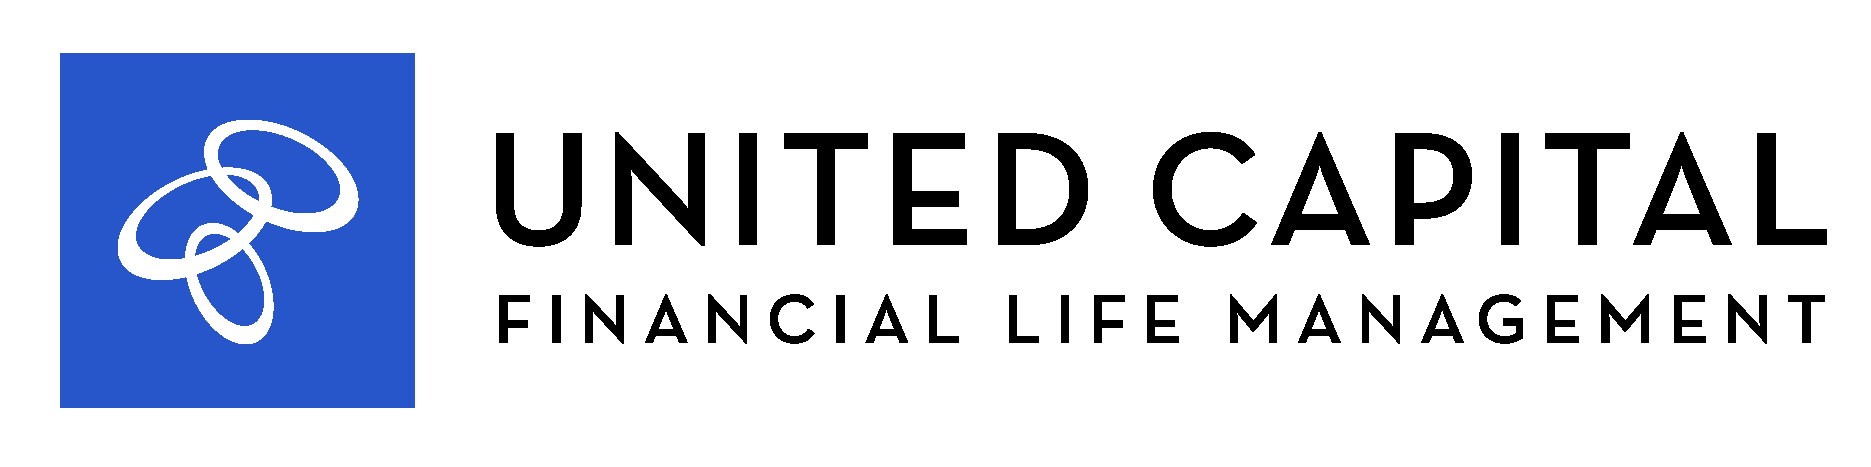 United Capital.png